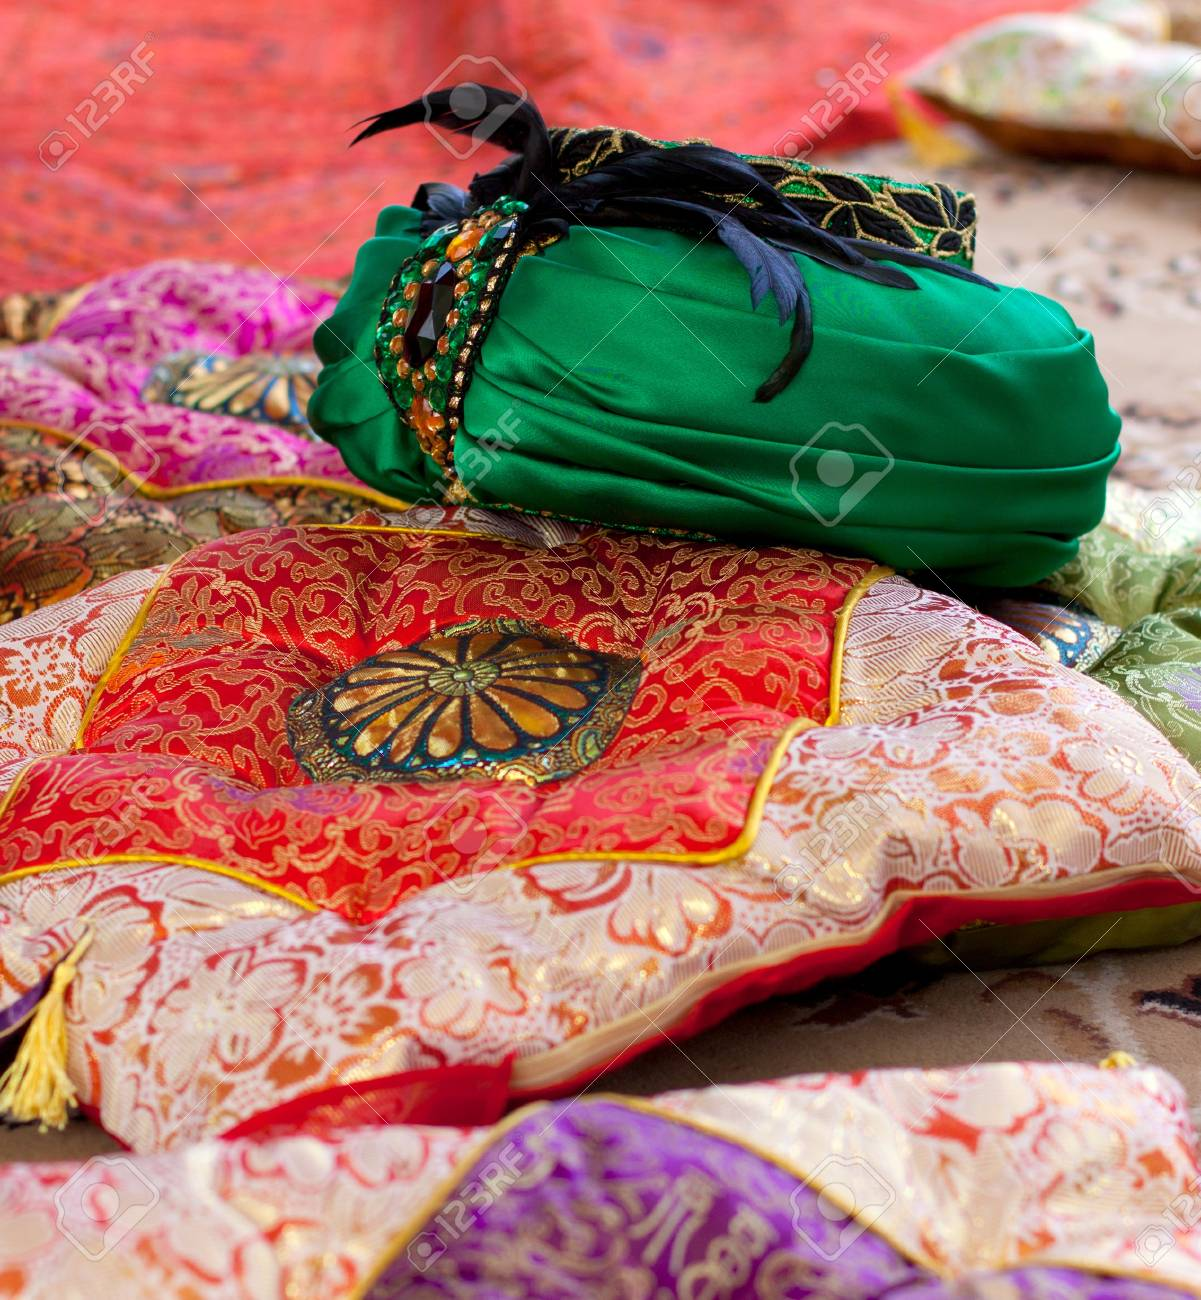 East  the lush green turban and decorative pillows Stock Photo - 15520490